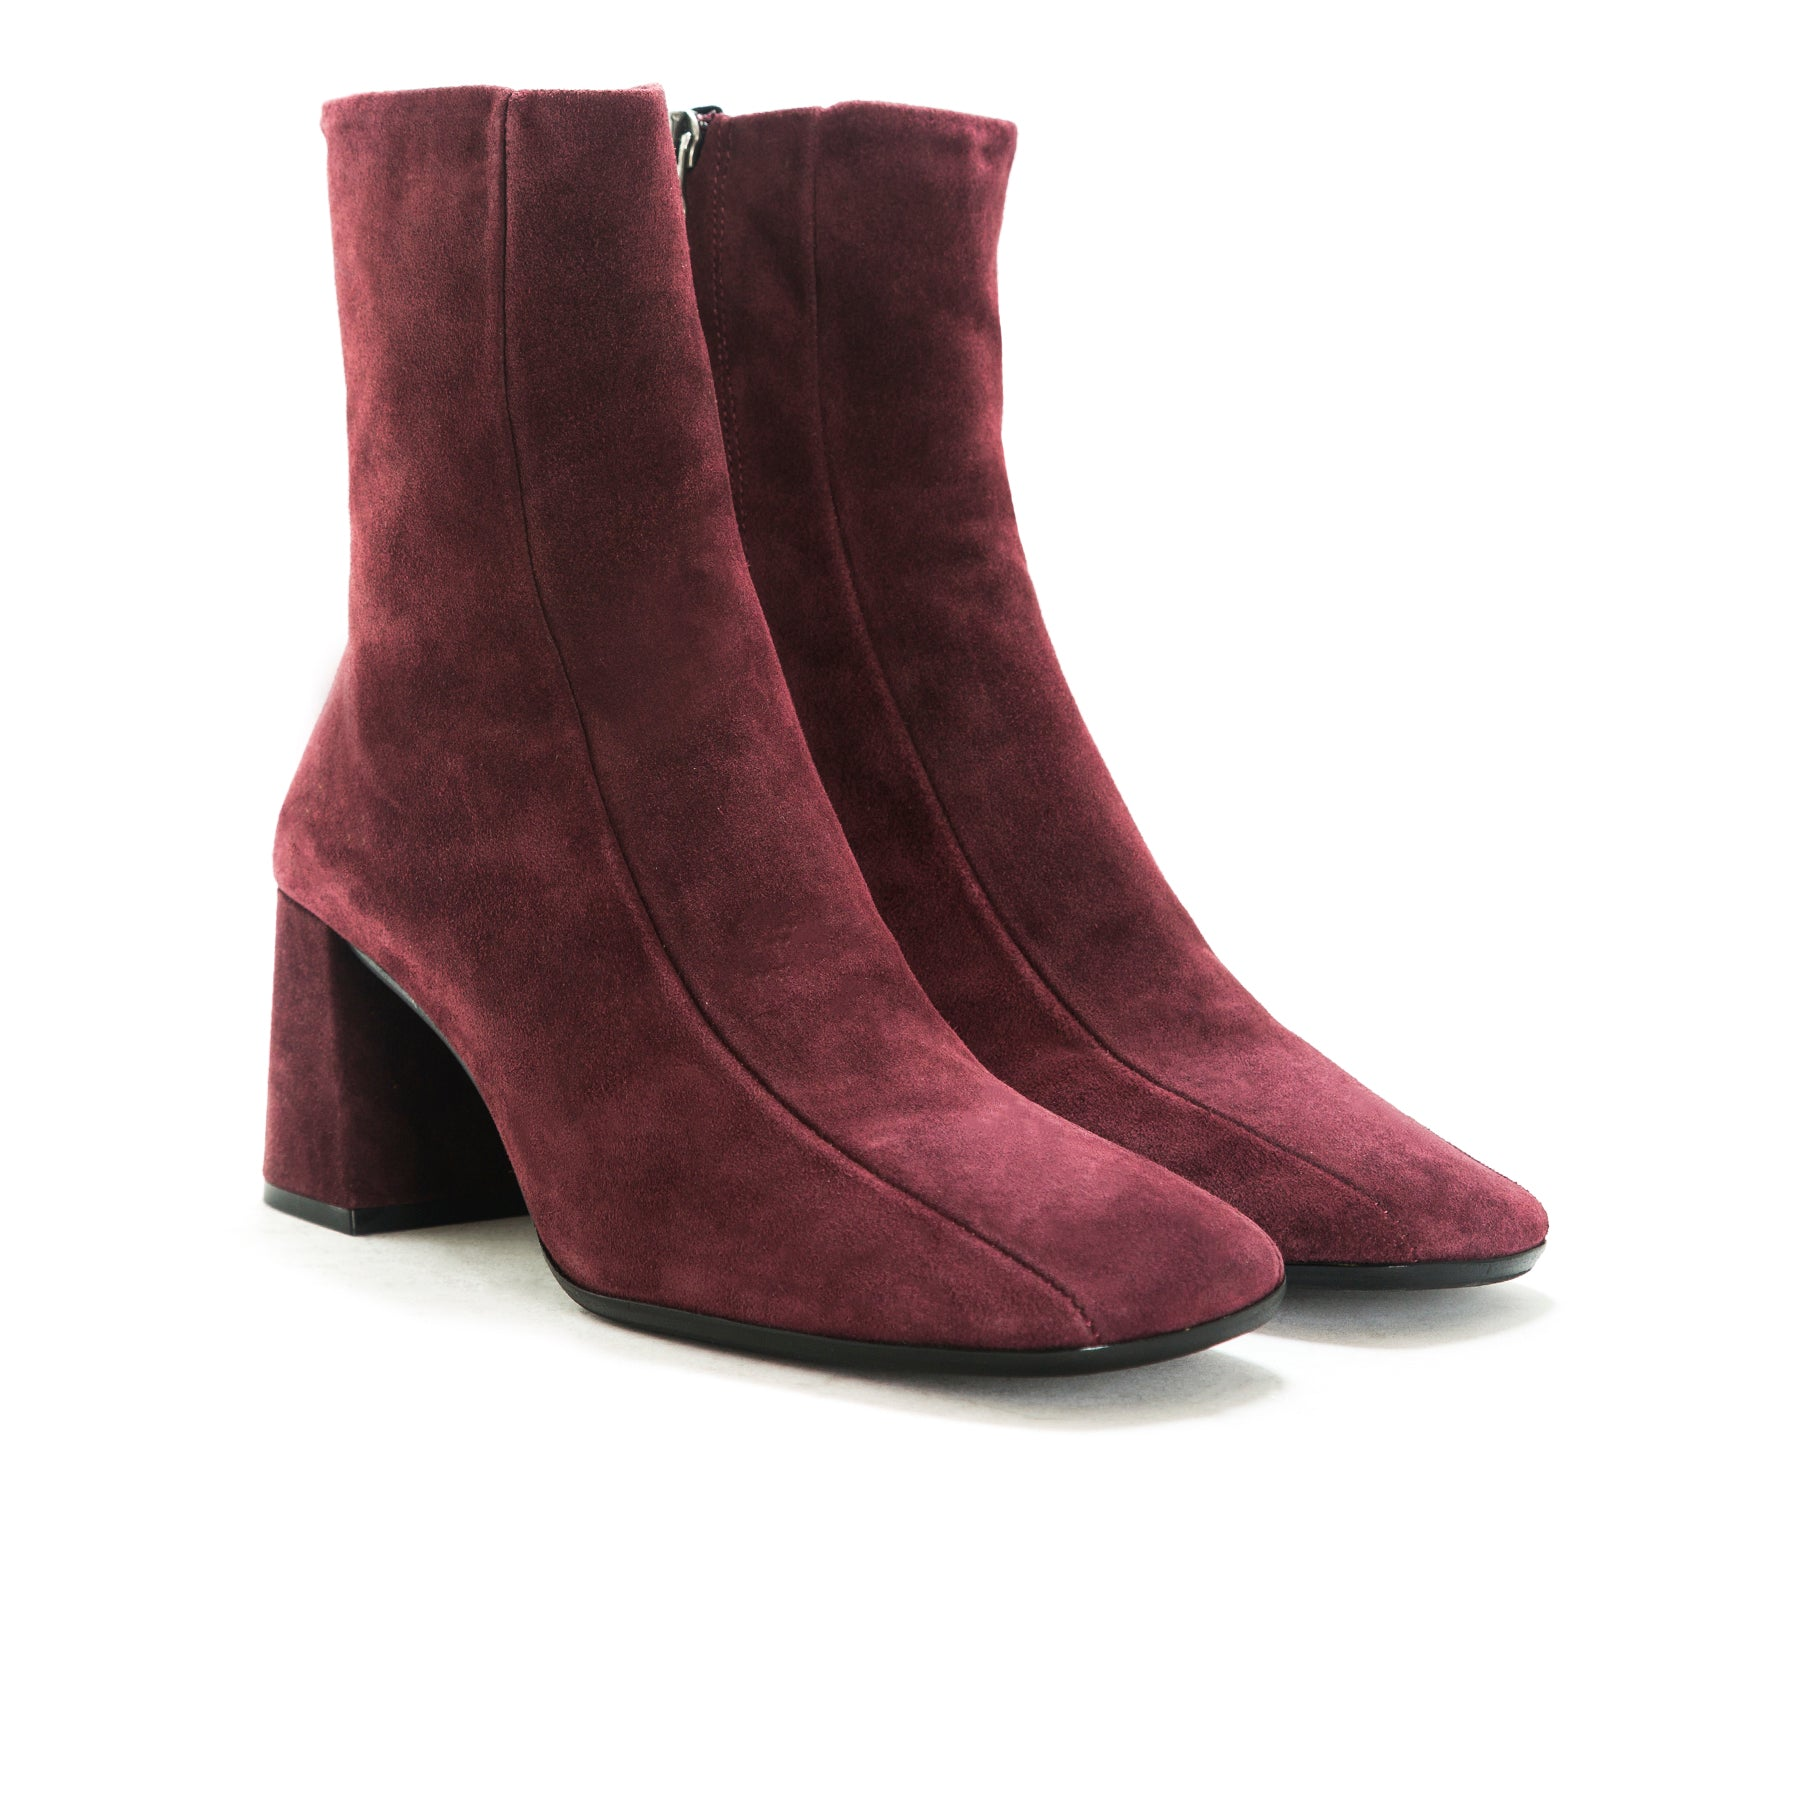 Lemont Bordo Suede